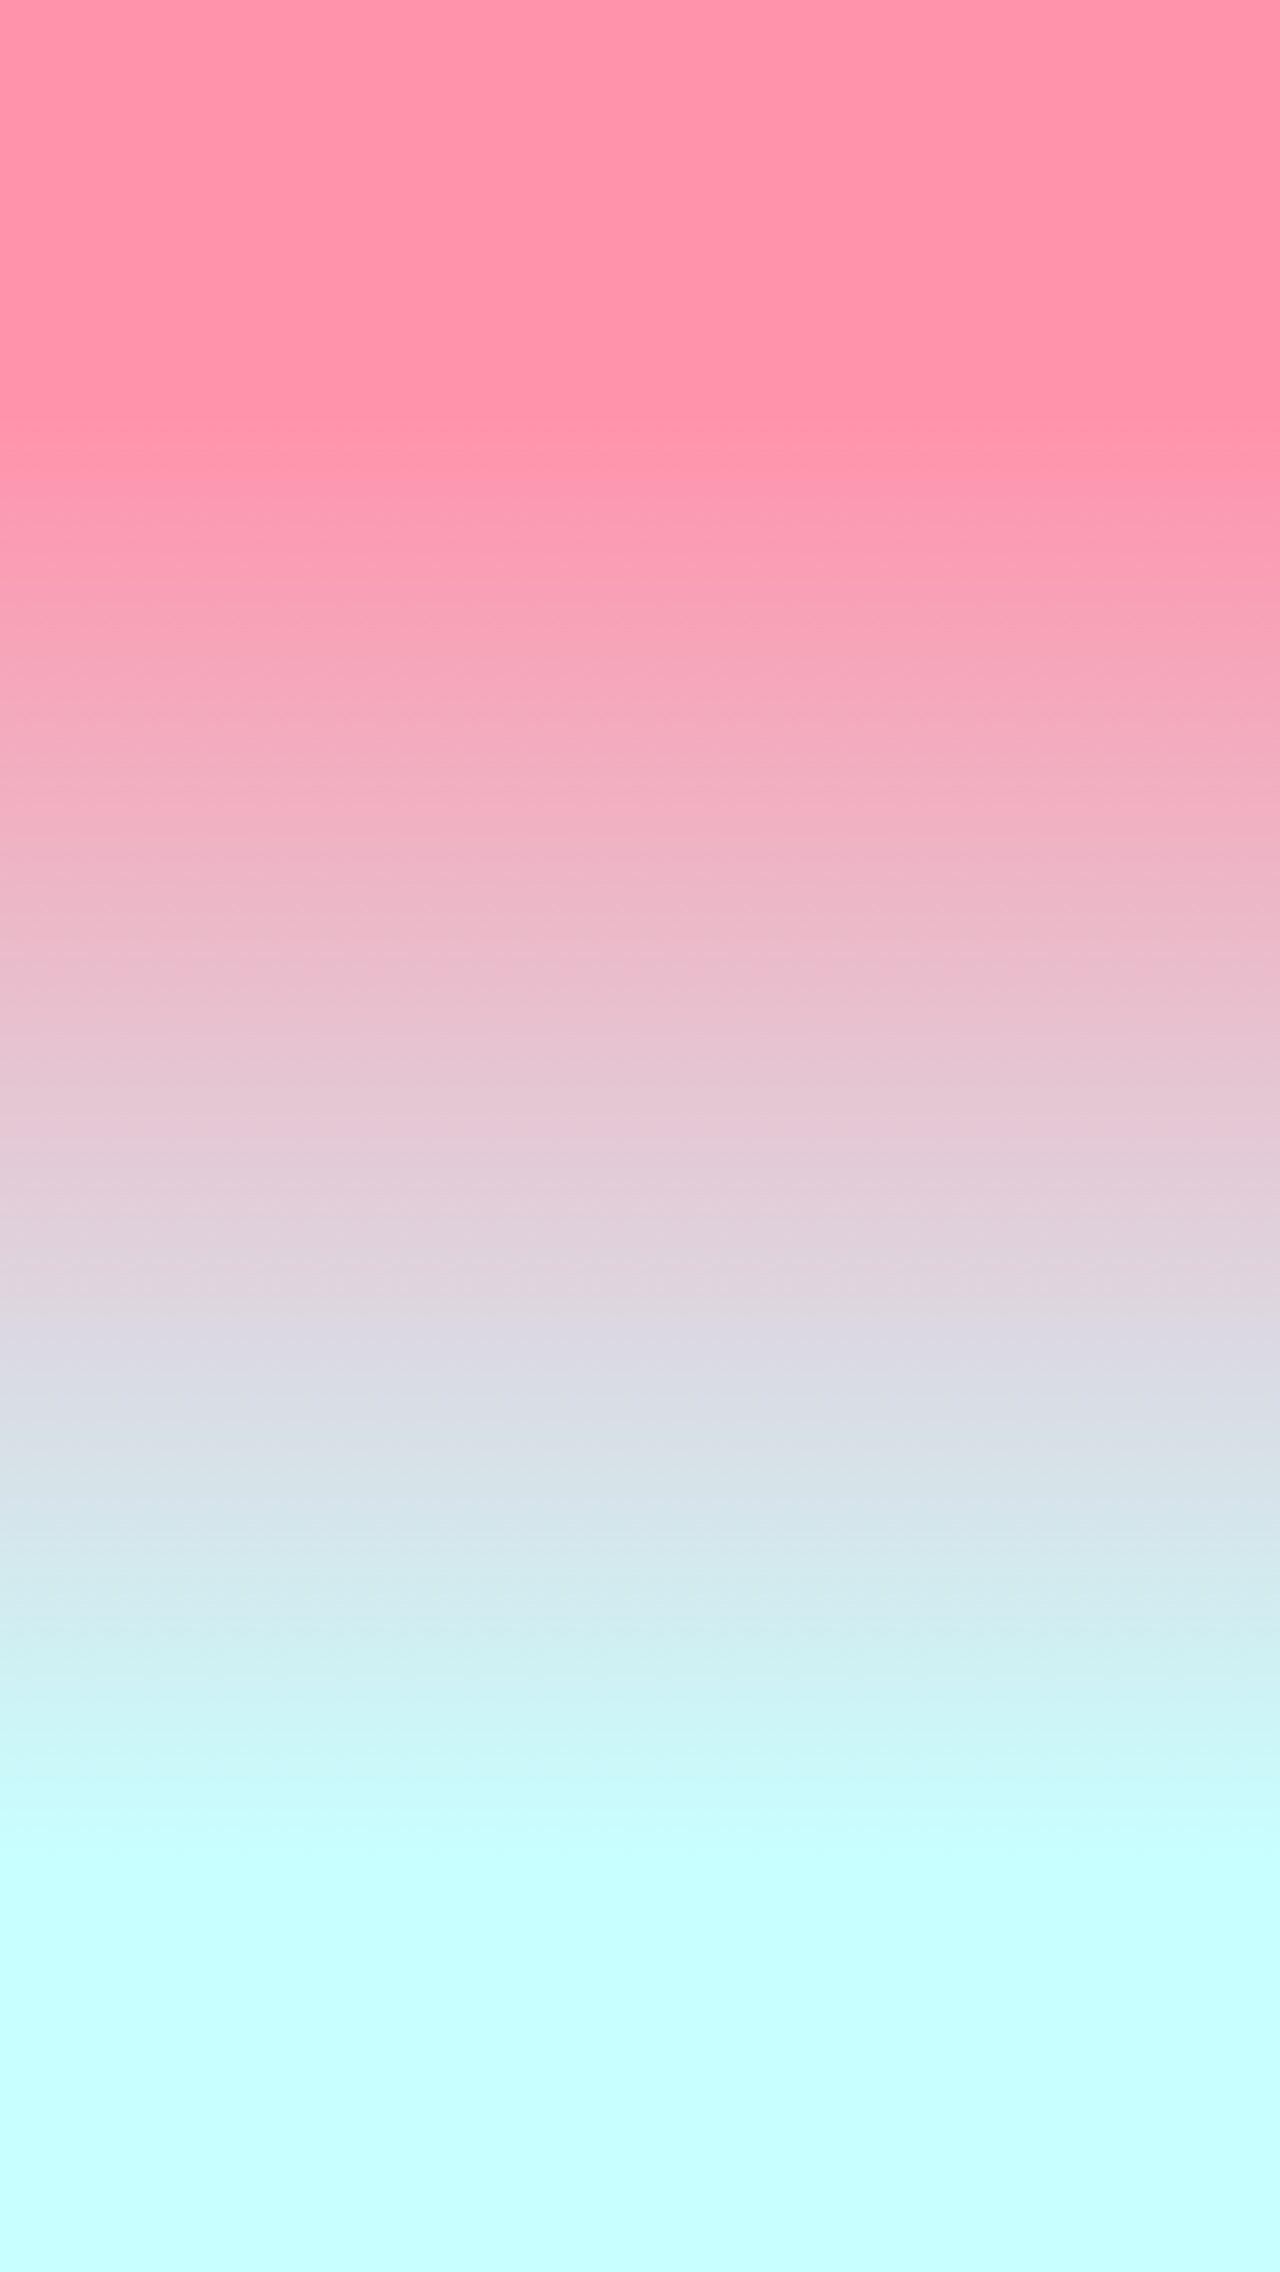 Pastel Pink Iphone Wallpapers ,